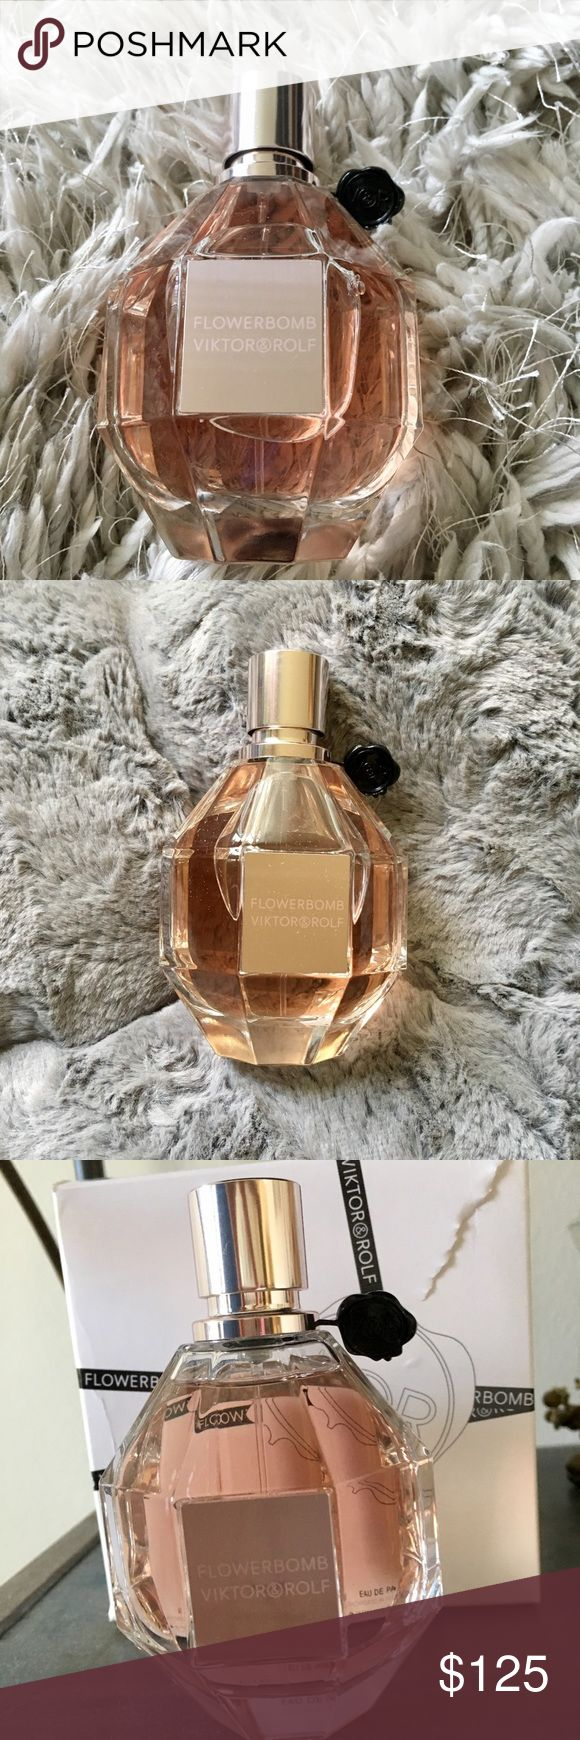 Viktor & Rolf 3.4 Ounce Flowerbomb Eau de Parfum Viktor & Rolf Flowerbomb Eau de Parfum - tester.  New, never been used. A bouquet of cattleya orchids, sambac jasmine, freesia and rose petals enriched by patchouli and vanilla. Viktor & Rolf Other